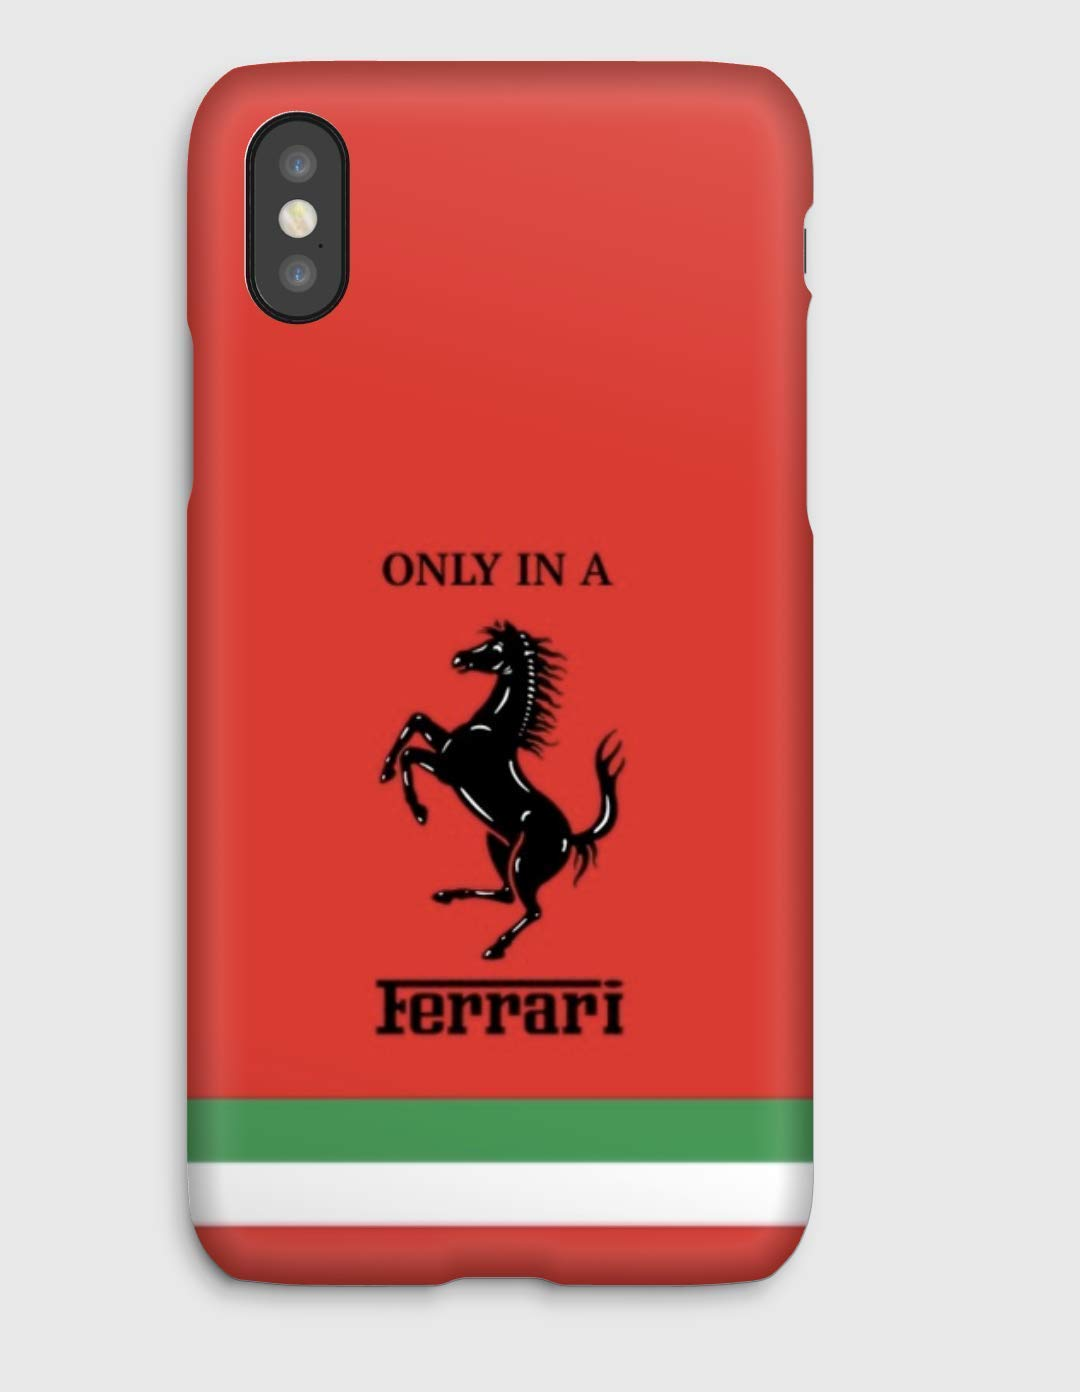 Only in a Ferrari R, Cover iPhone X,XS,XS Max,XR, 8, 8+, 7, 7+, 6S, 6, 6S+, 6+, 5C, 5, 5S, 5SE, 4S, 4,